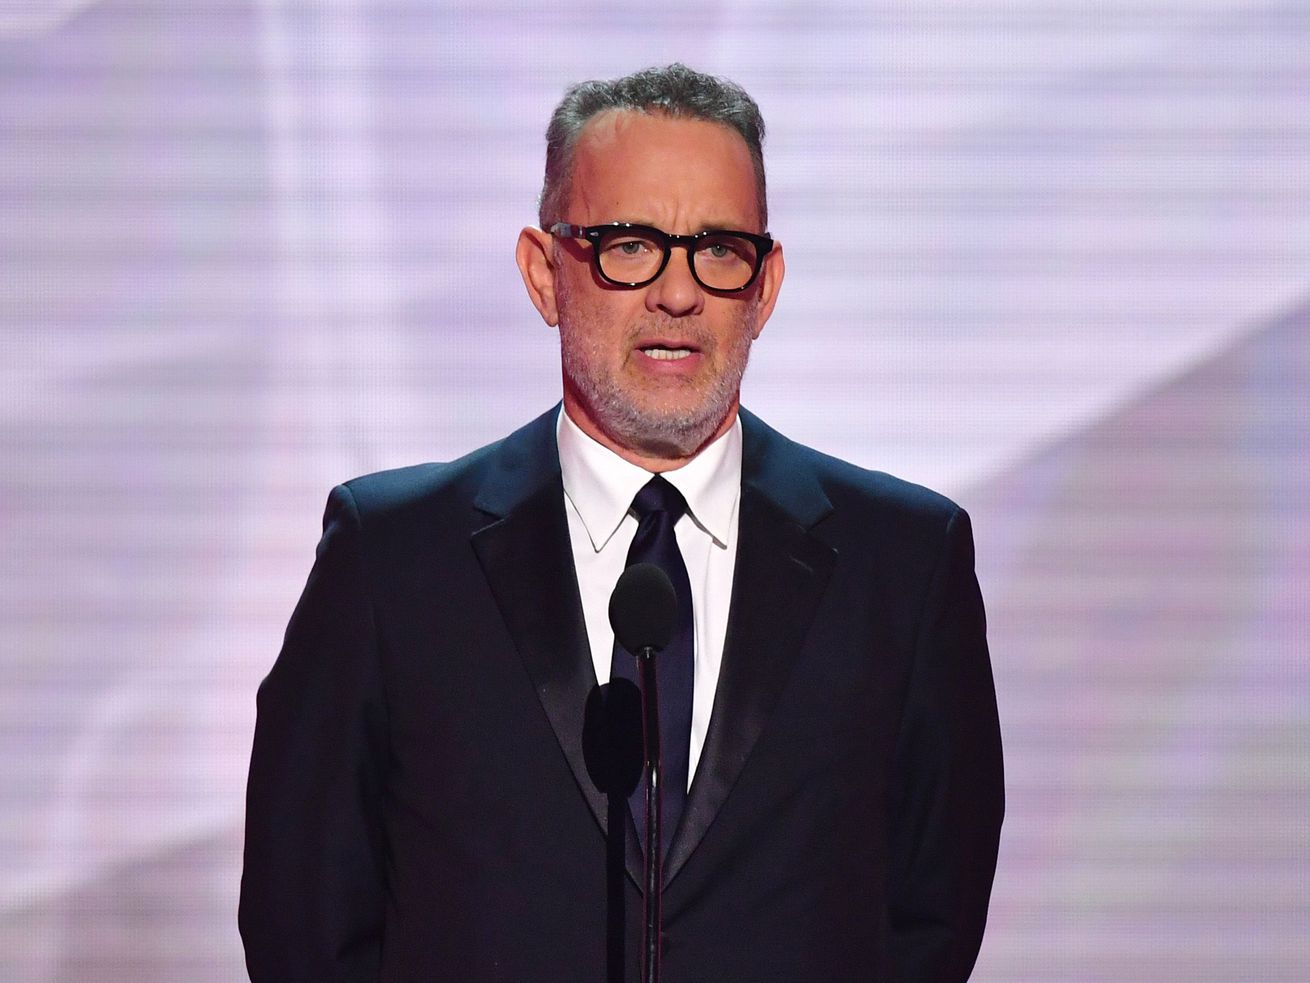 Actor Tom Hanks speaks onstage during the 25th Annual Screen Actors Guild Awards show in Los Angeles in 2019.